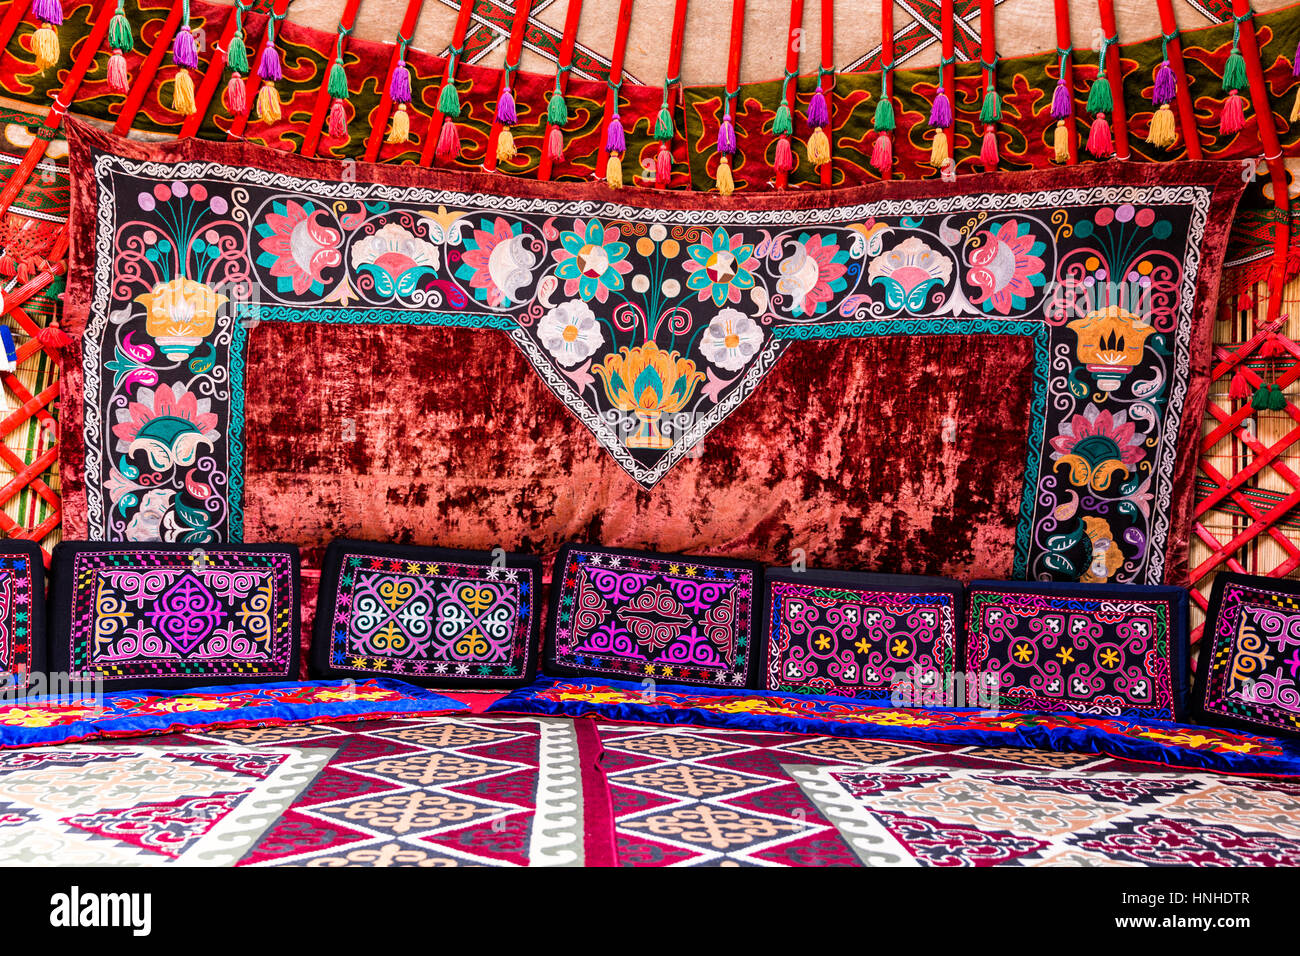 mongolian yurt interior stockfotos mongolian yurt interior bilder alamy. Black Bedroom Furniture Sets. Home Design Ideas